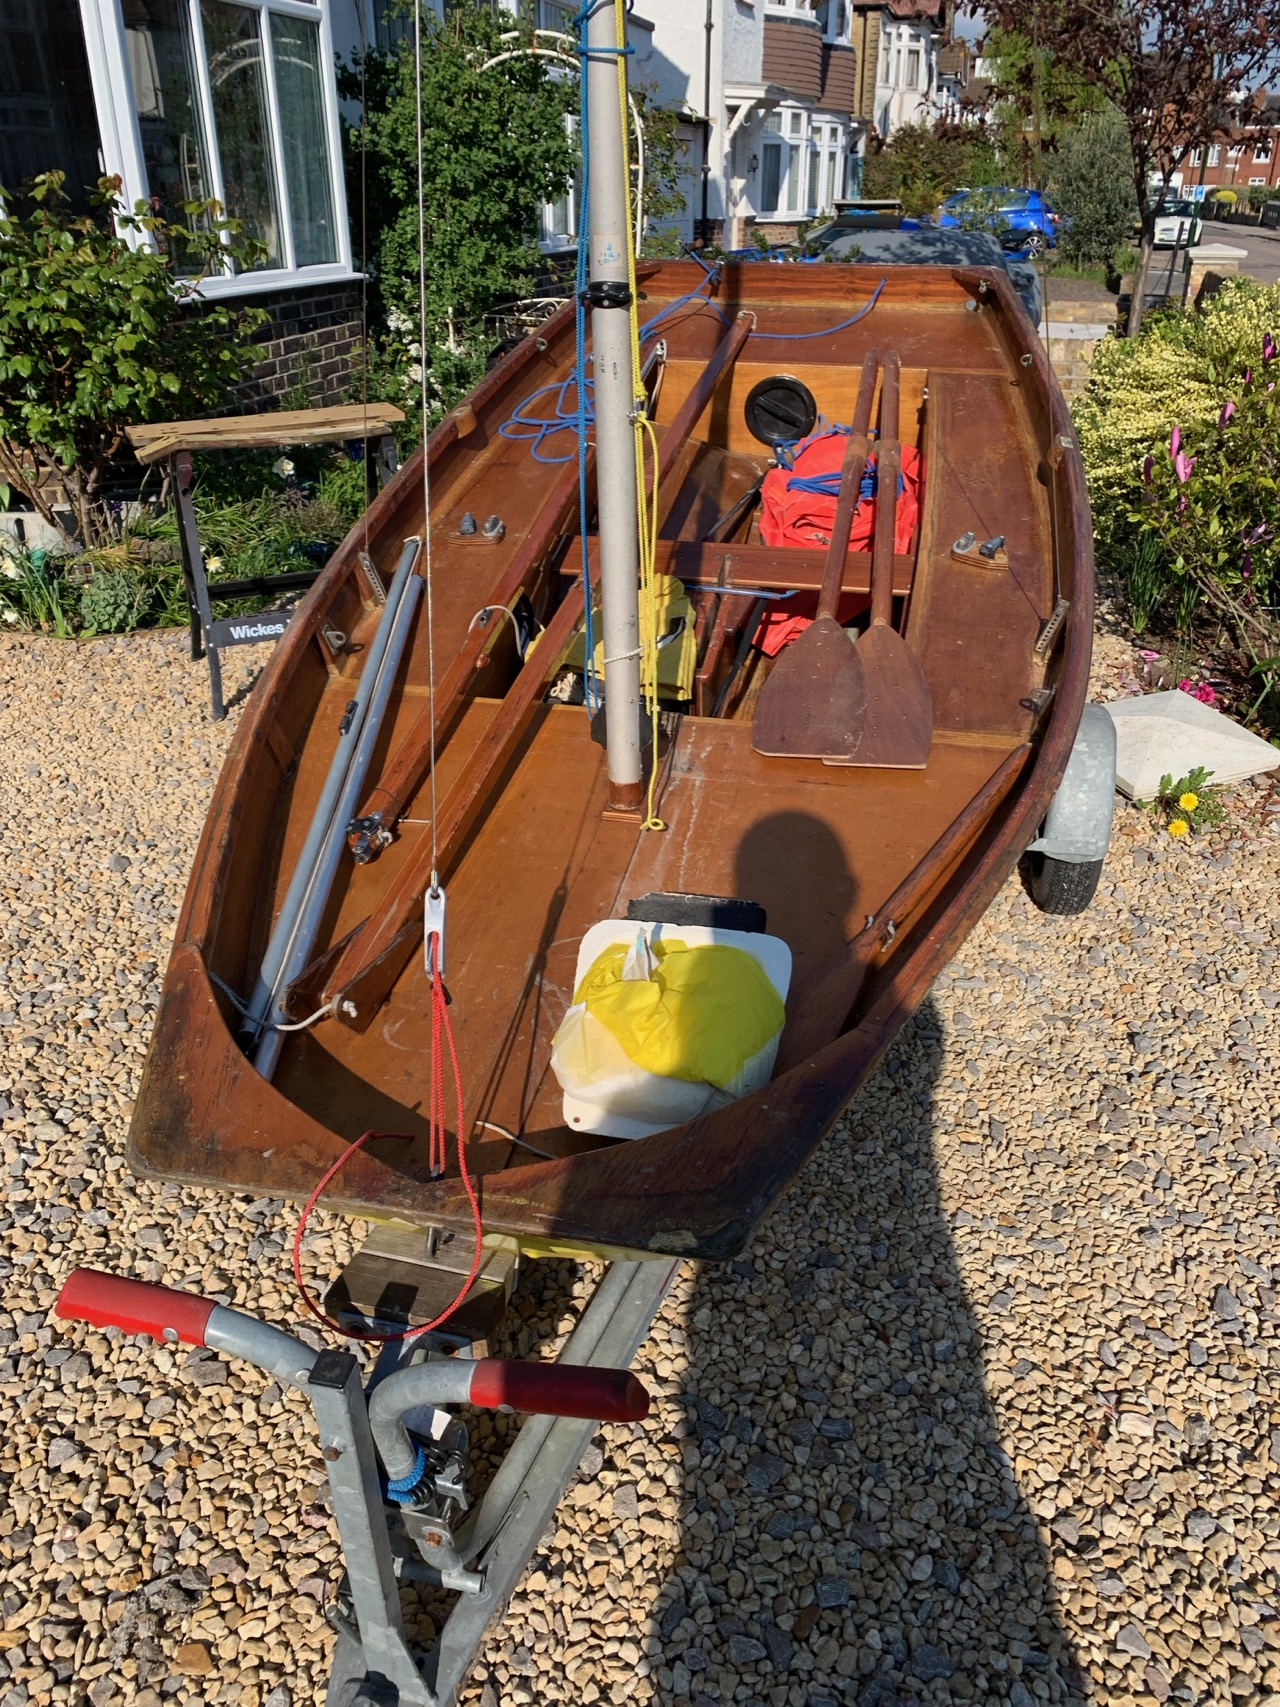 A yellow wooden Mirror dinghy with mast up on a driveway